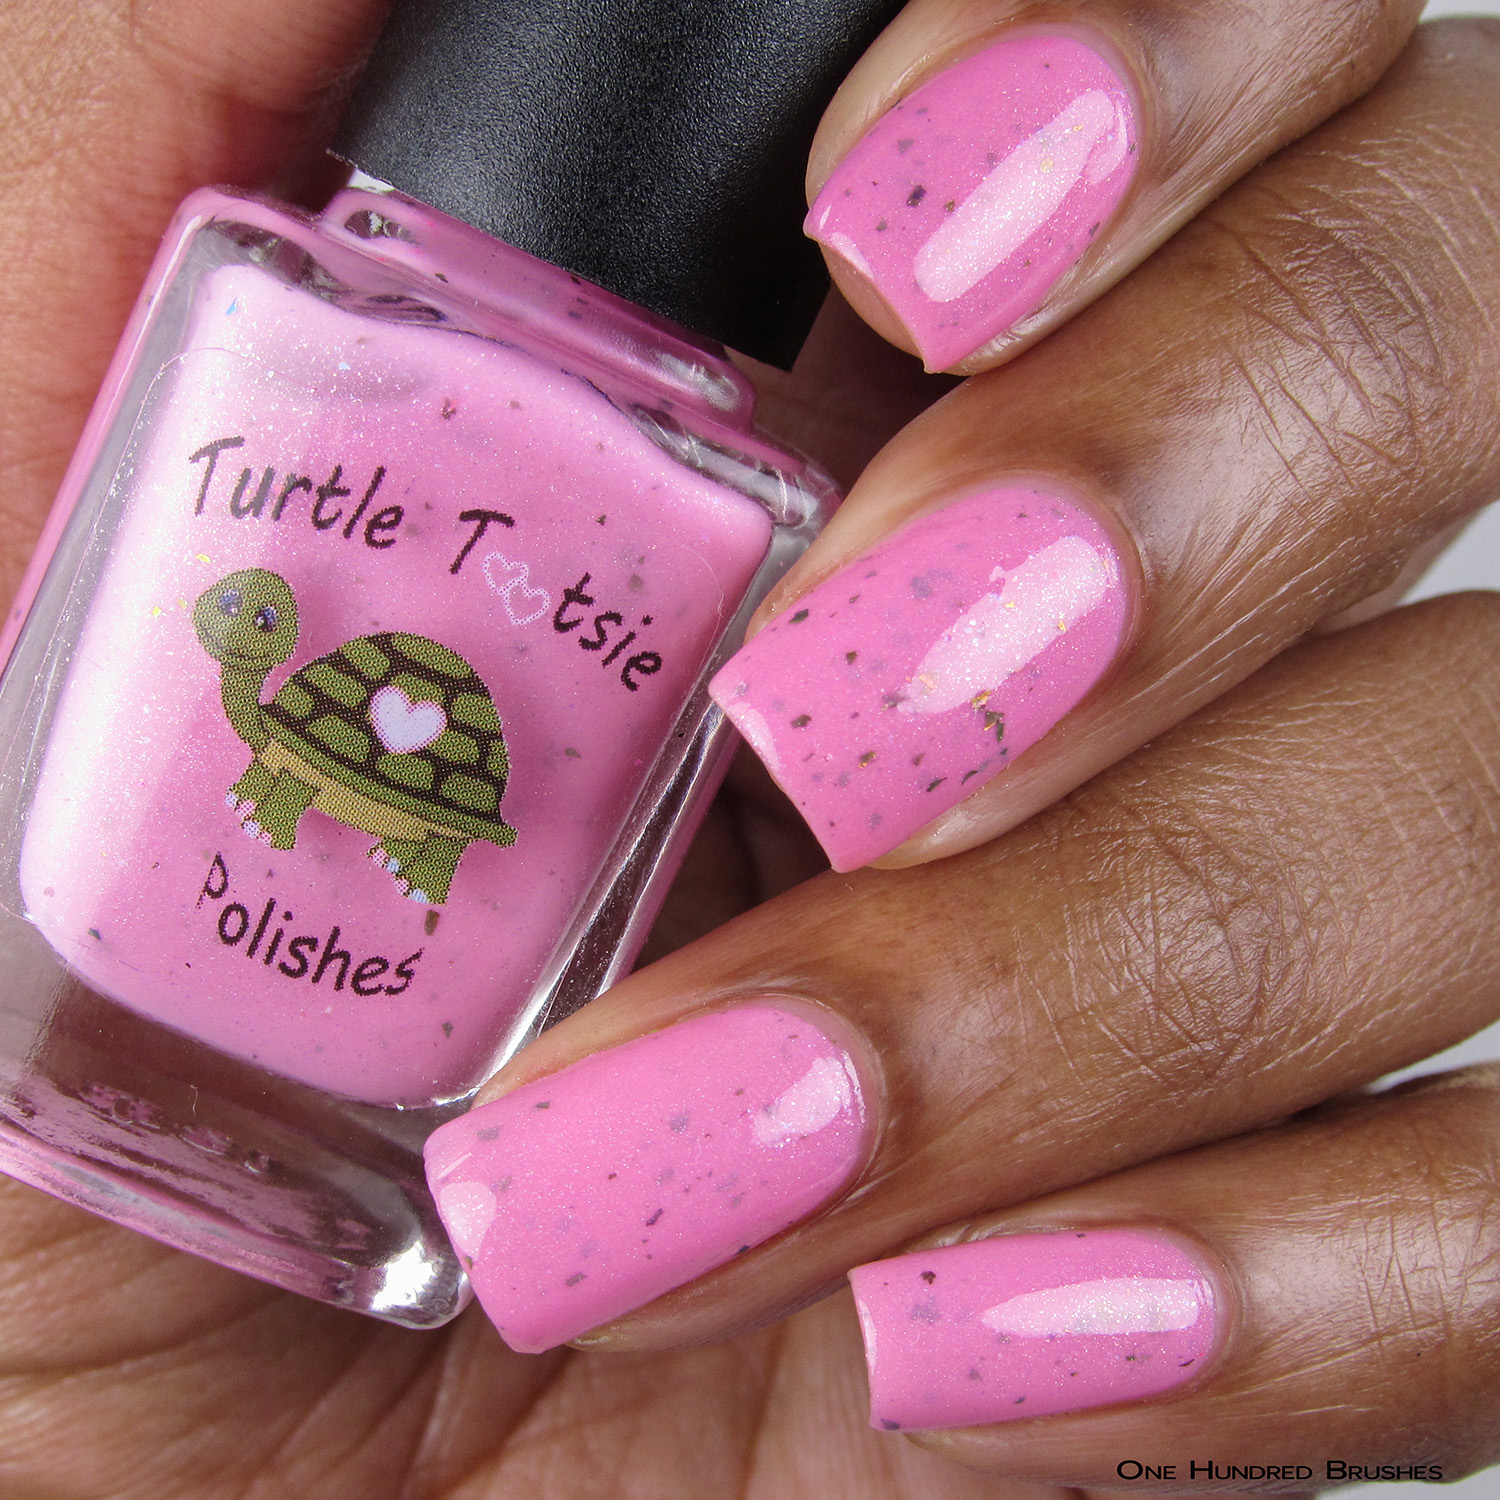 Shipoopi - Turtle Tootsie Polishes - Polish Pickup Aug 2018